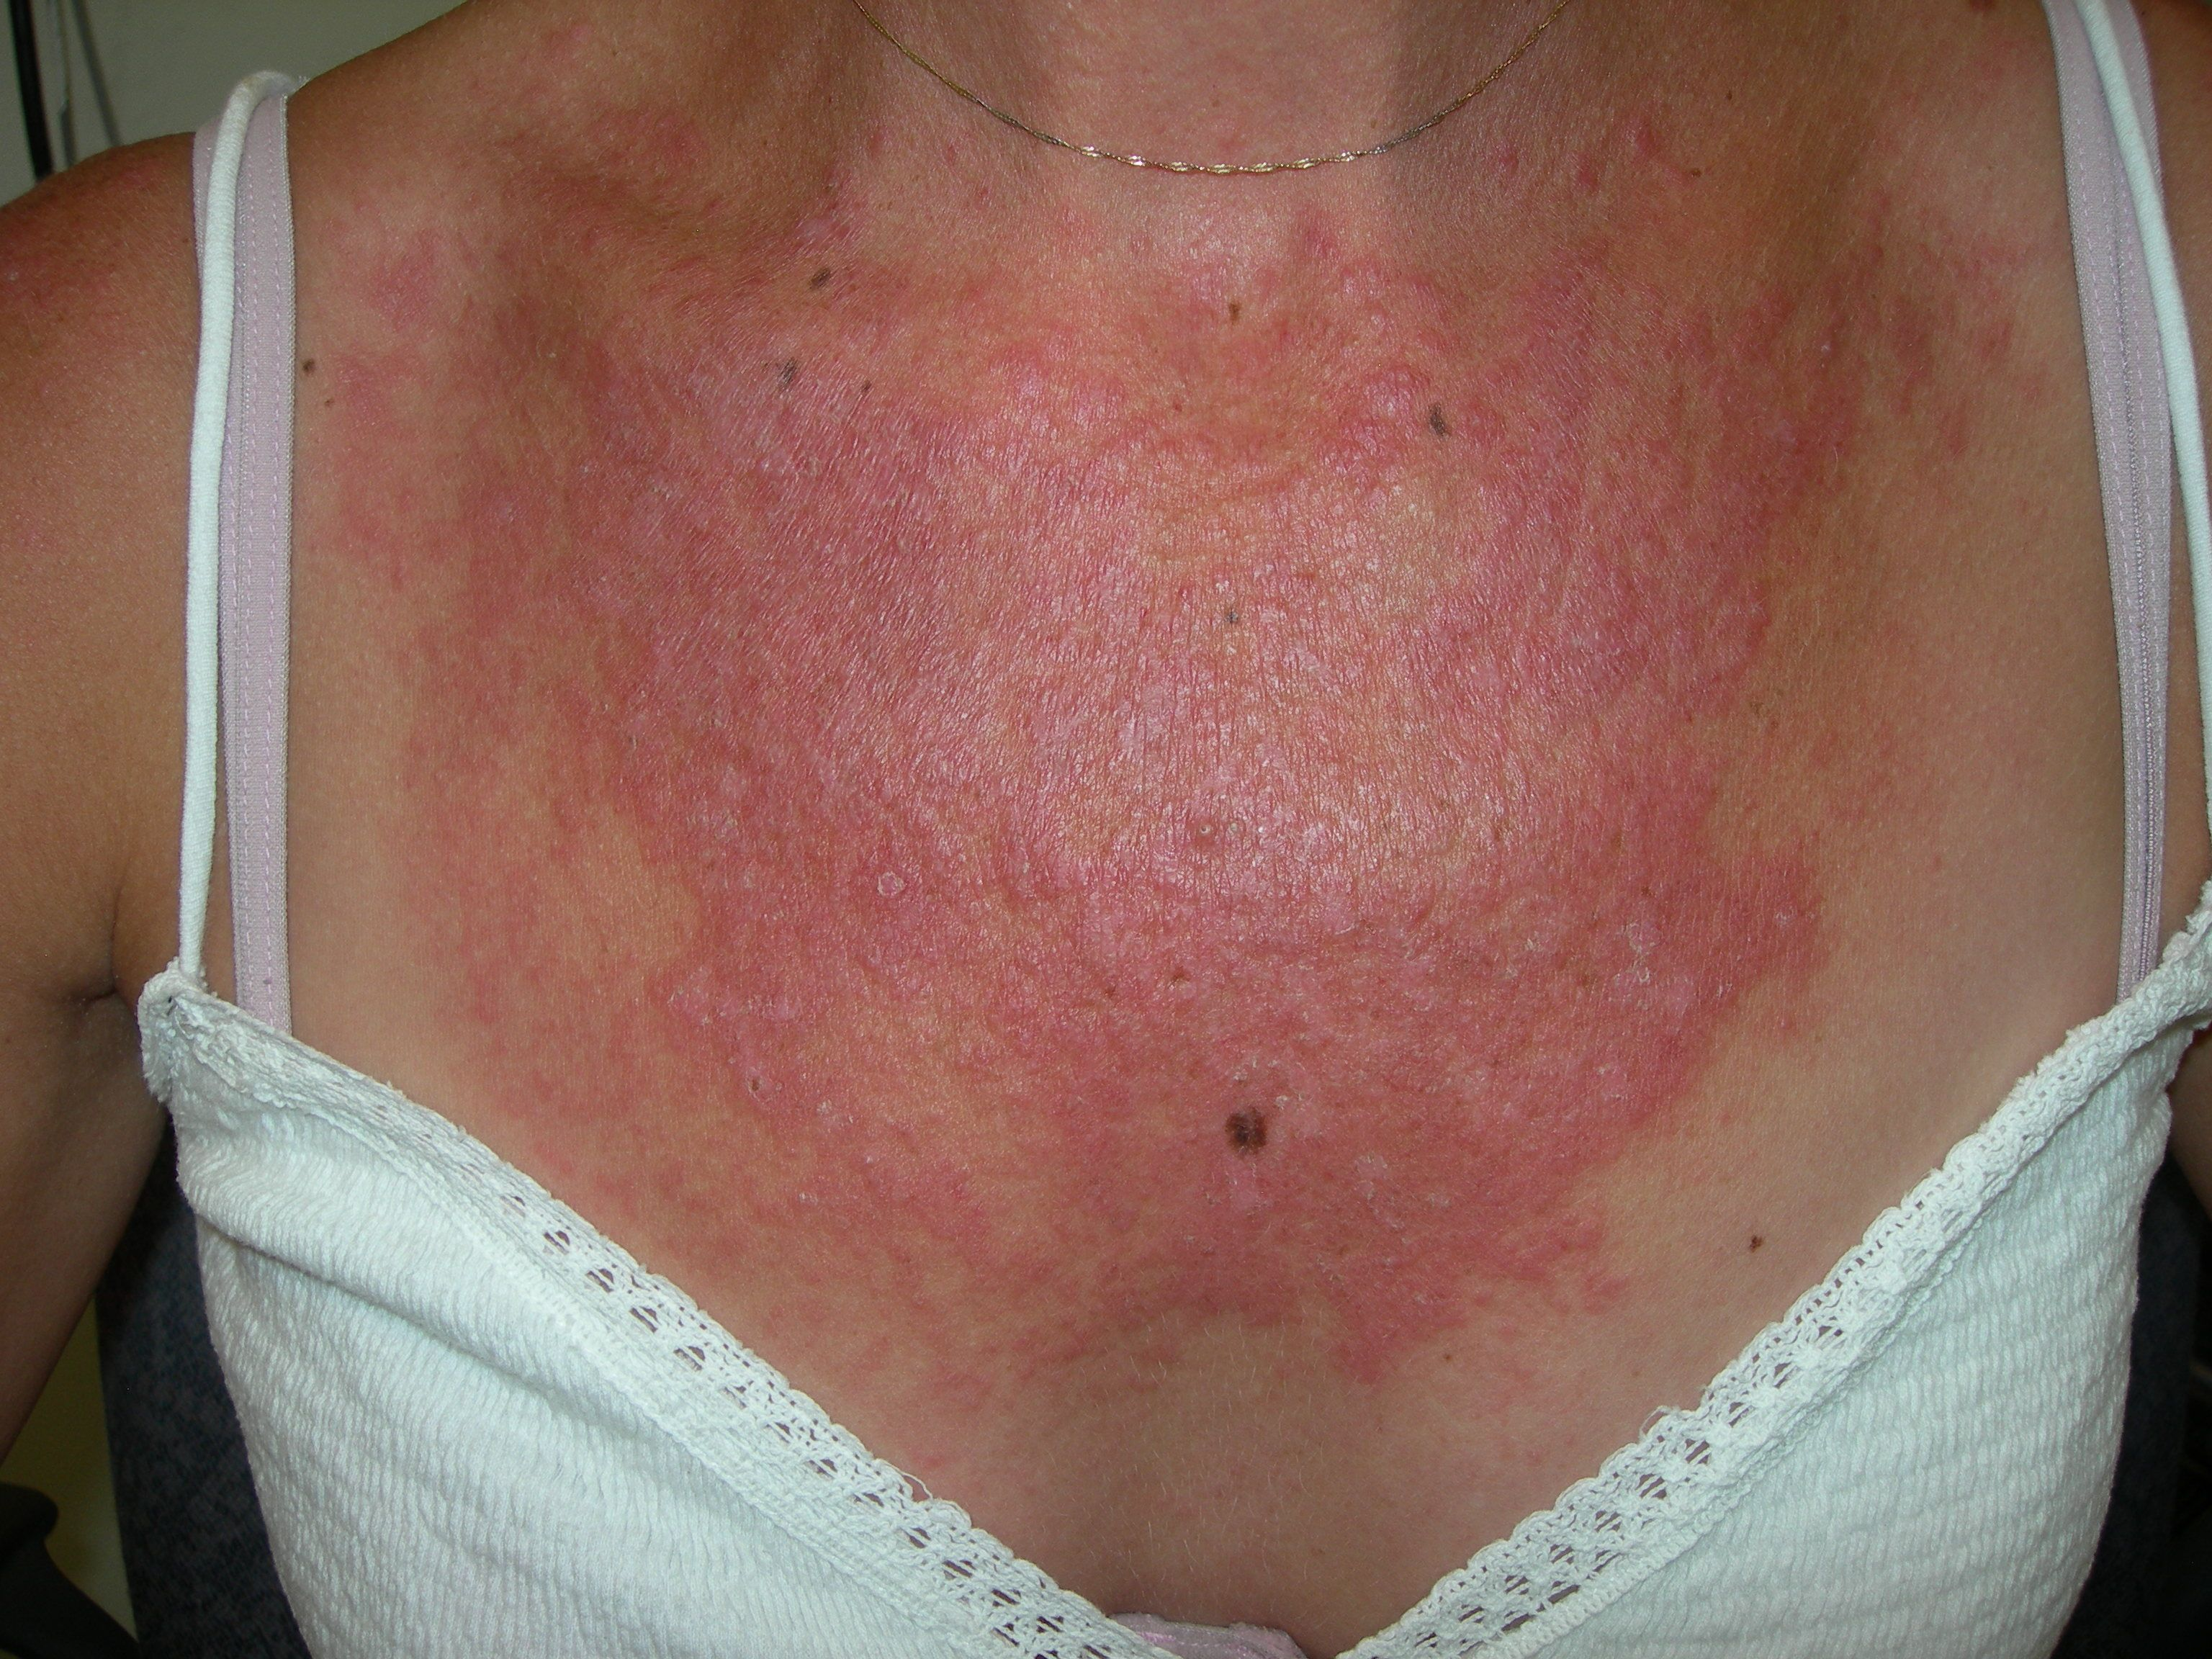 facial redness caused by autoimmune dysfunction theorize